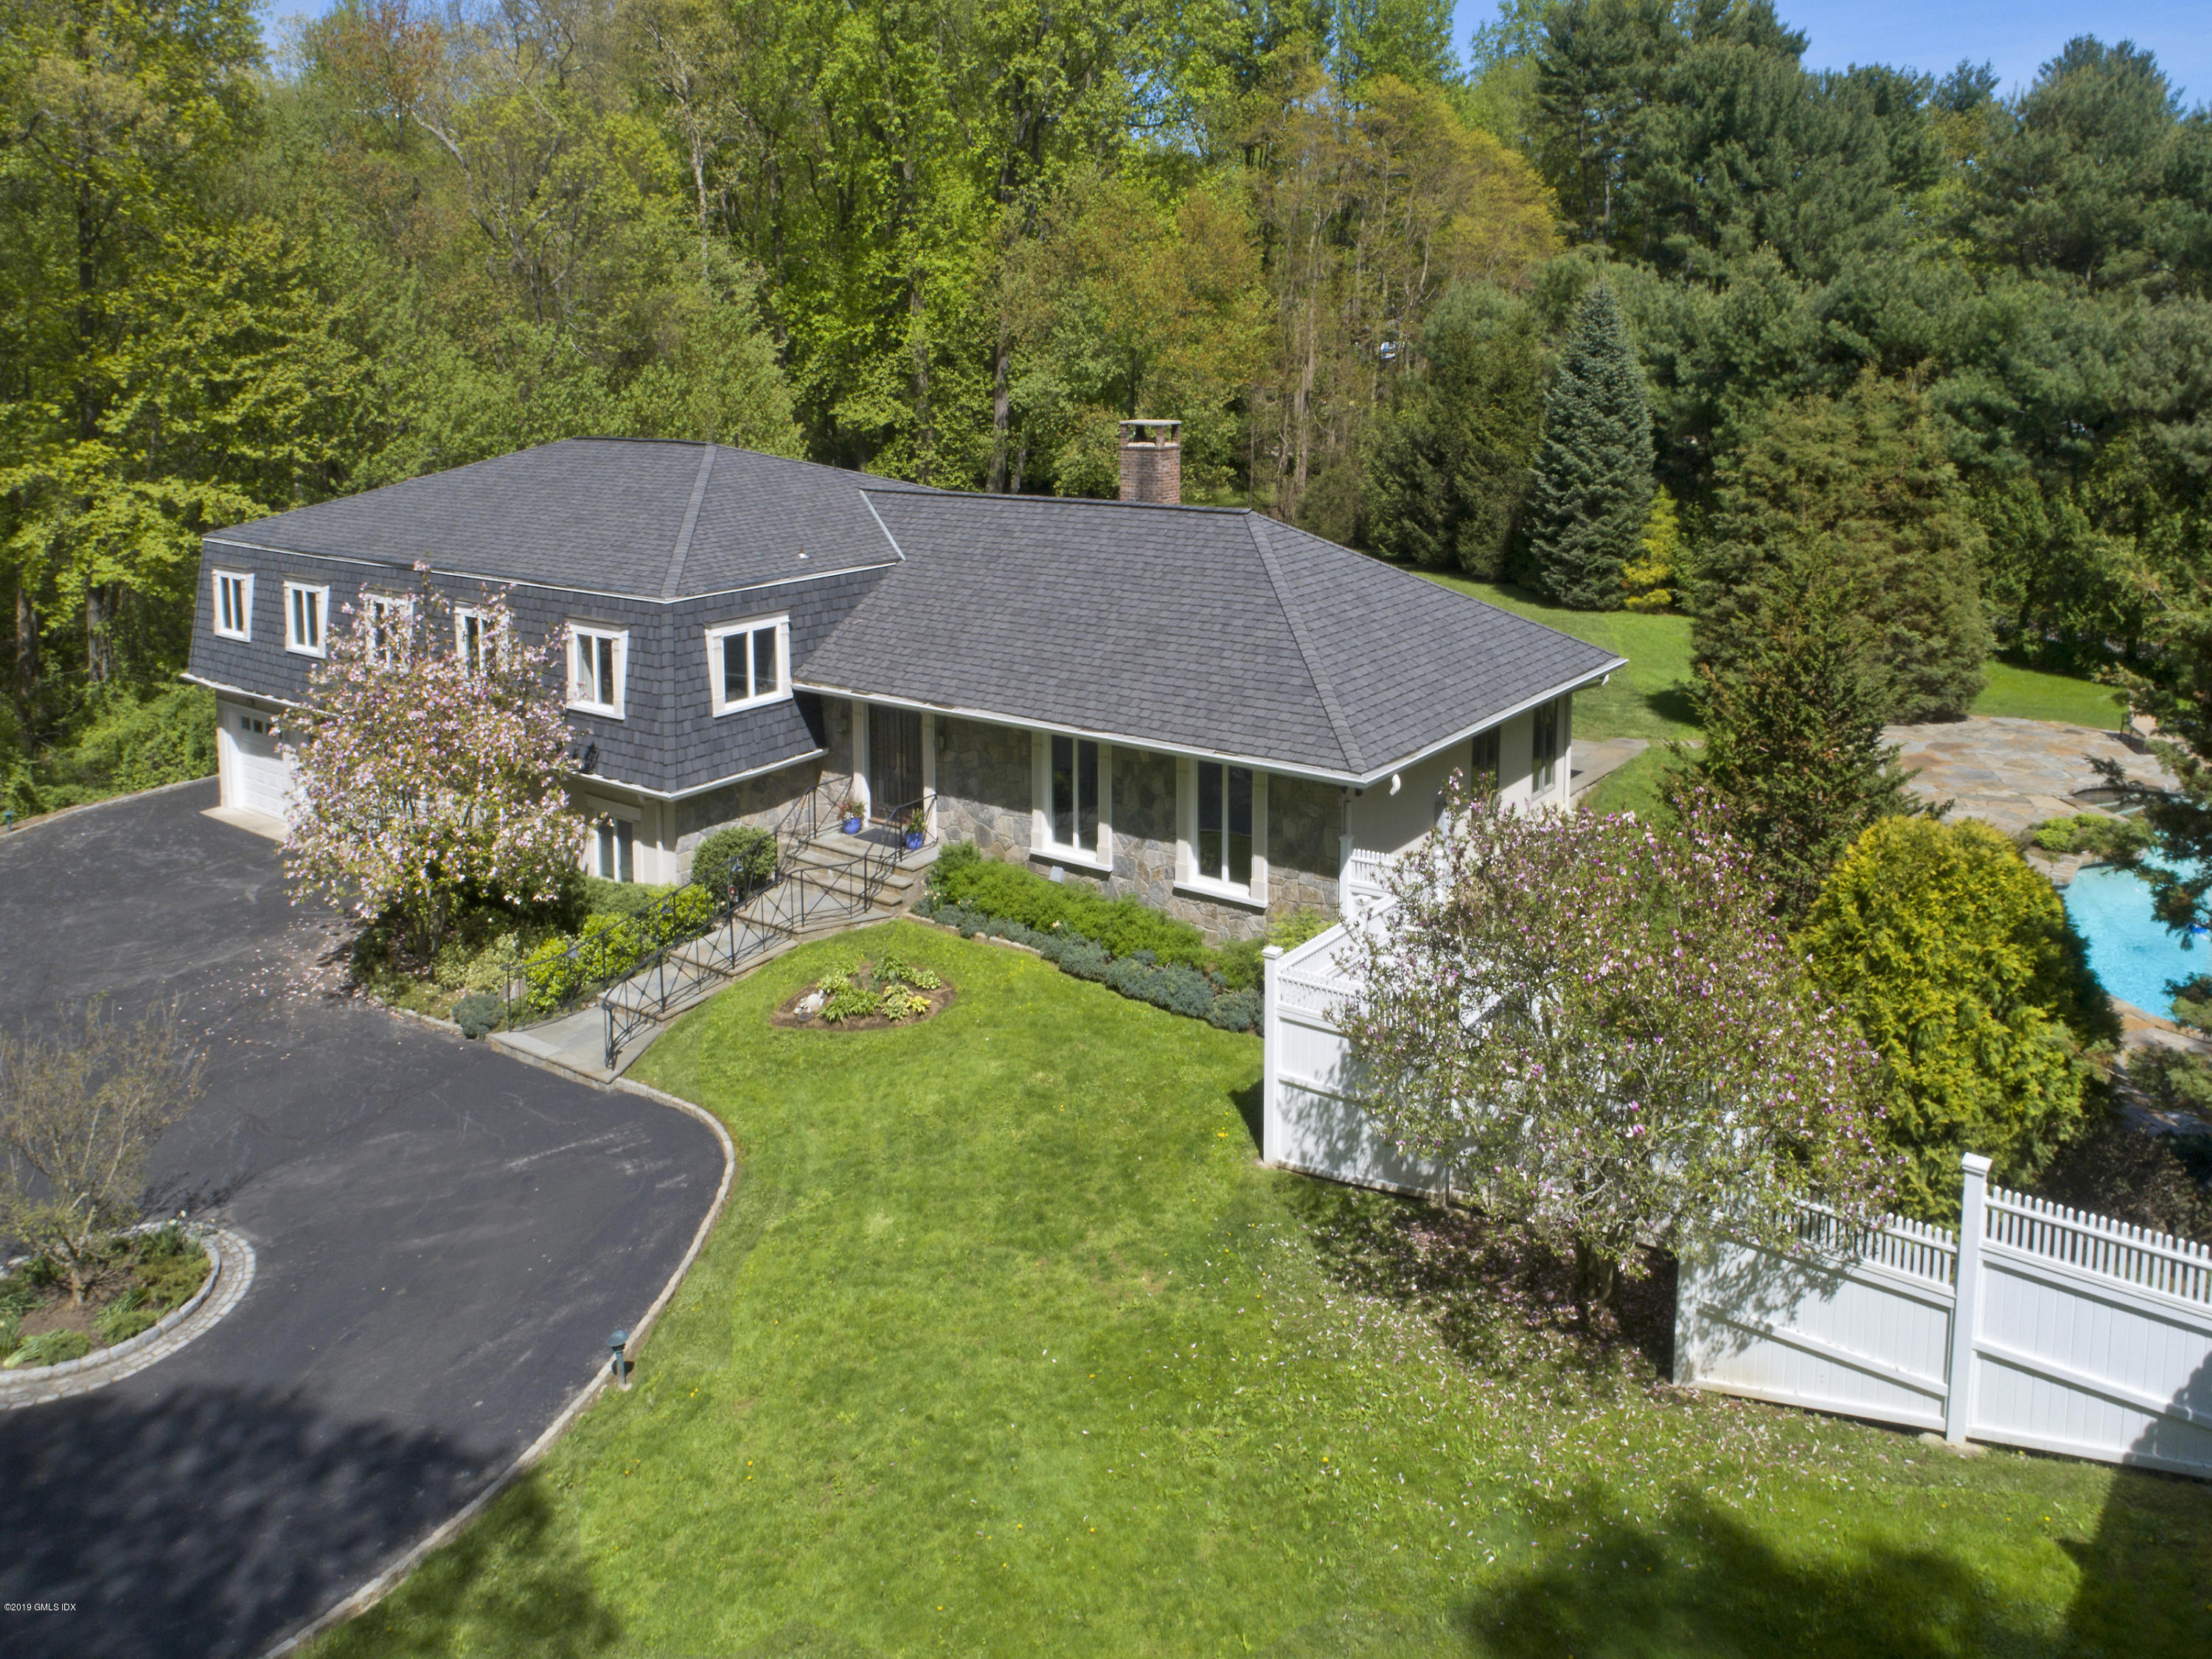 633 Round Hill Road,Greenwich,Connecticut 06831,5 Bedrooms Bedrooms,4 BathroomsBathrooms,Single family,Round Hill,106593